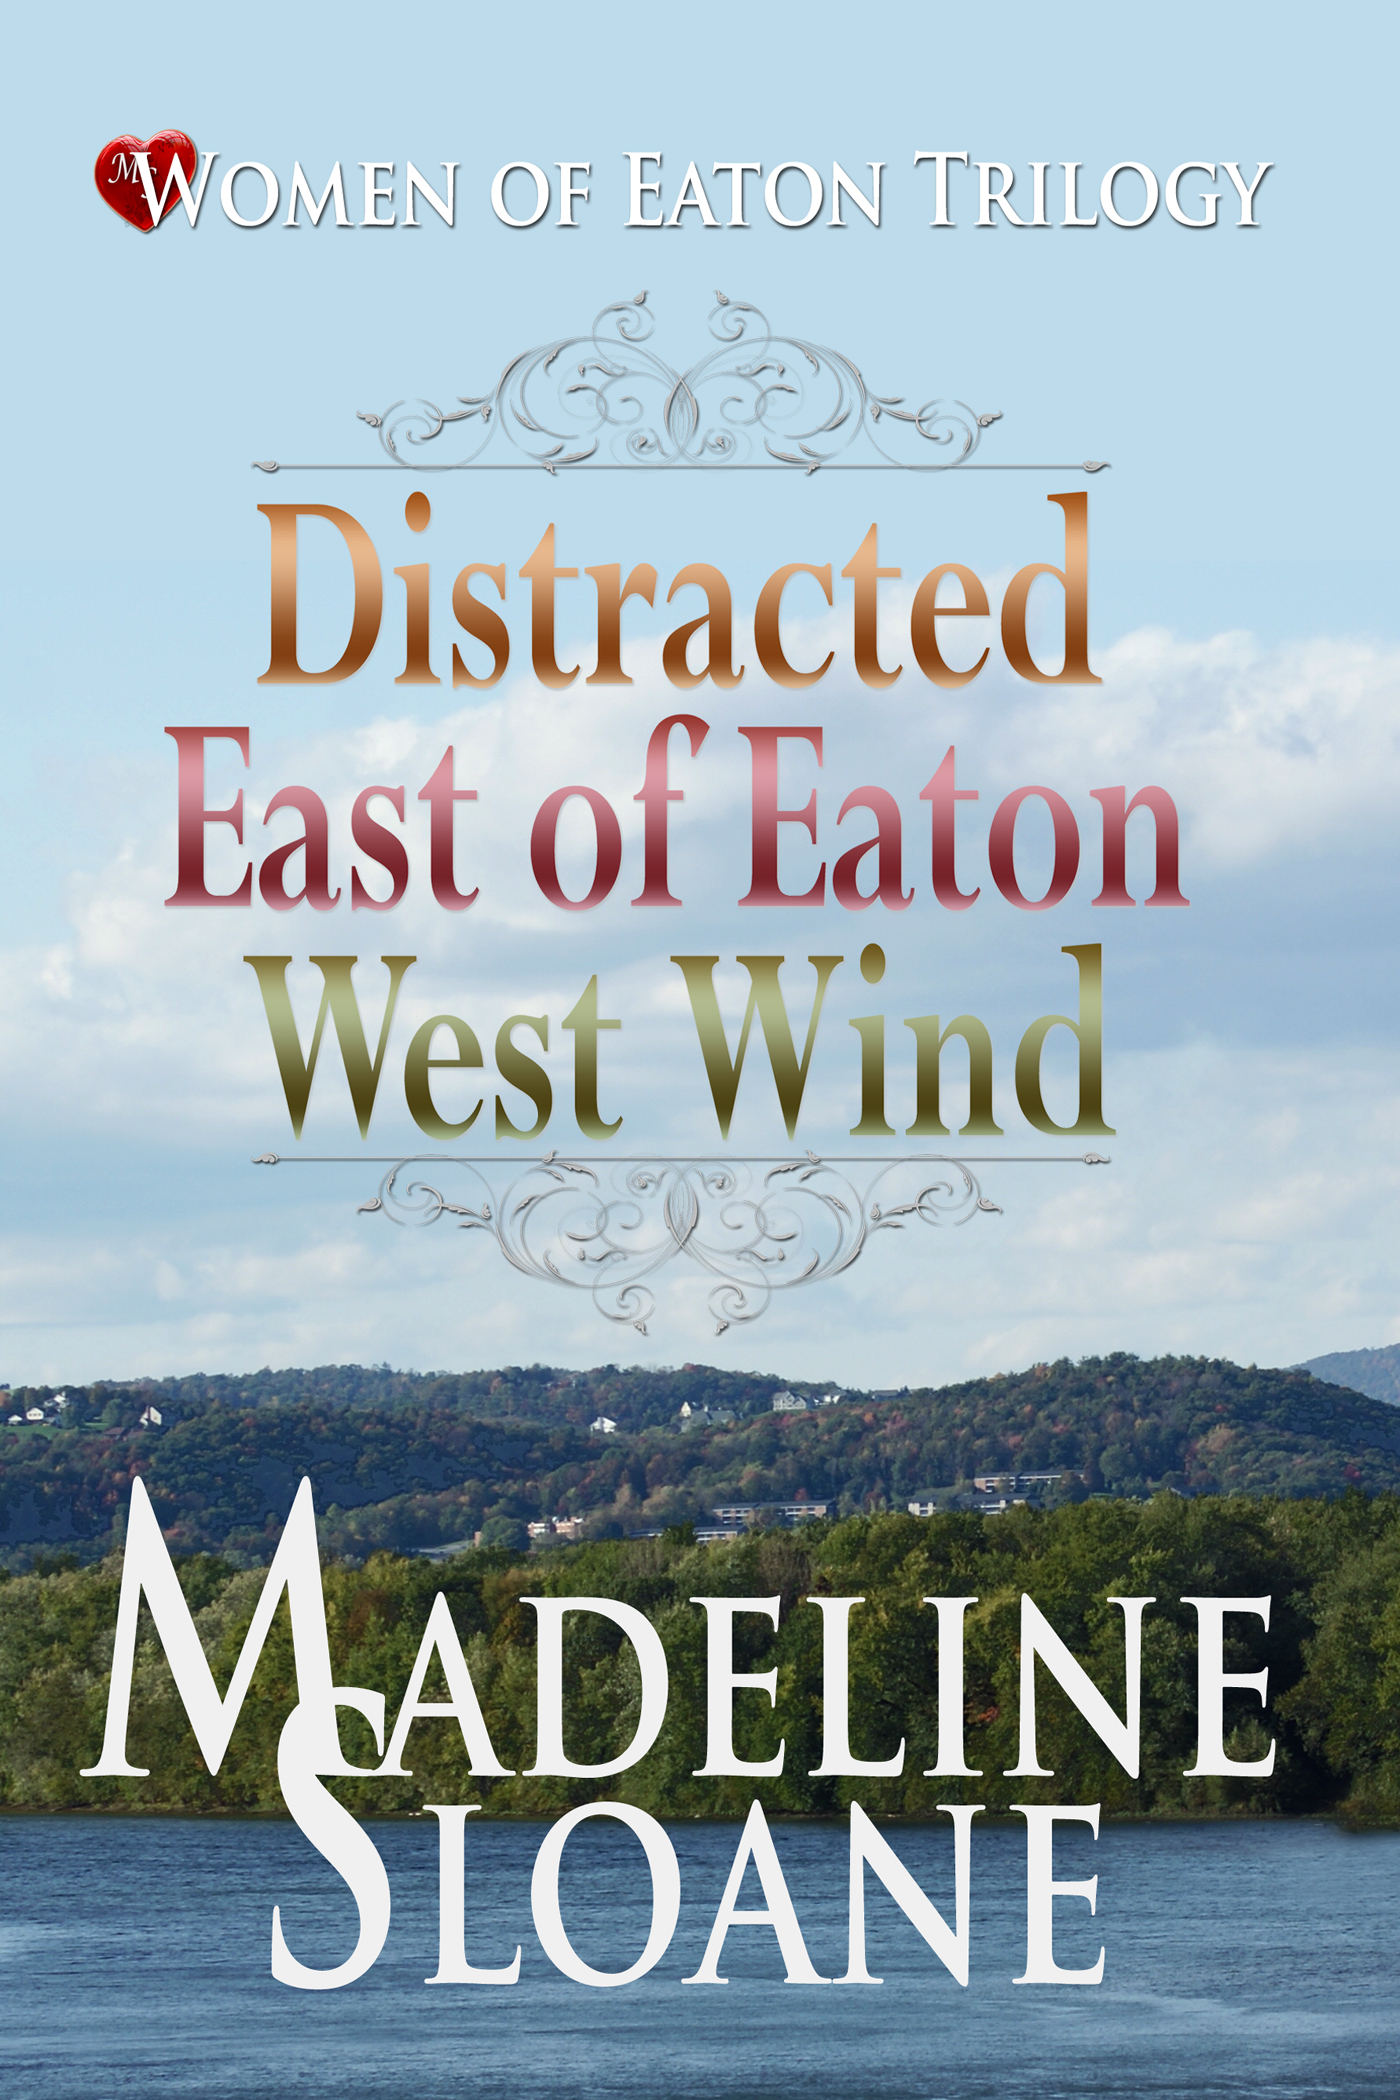 Women of Eaton Trilogy: Distracted, East of Eaton, West Wind